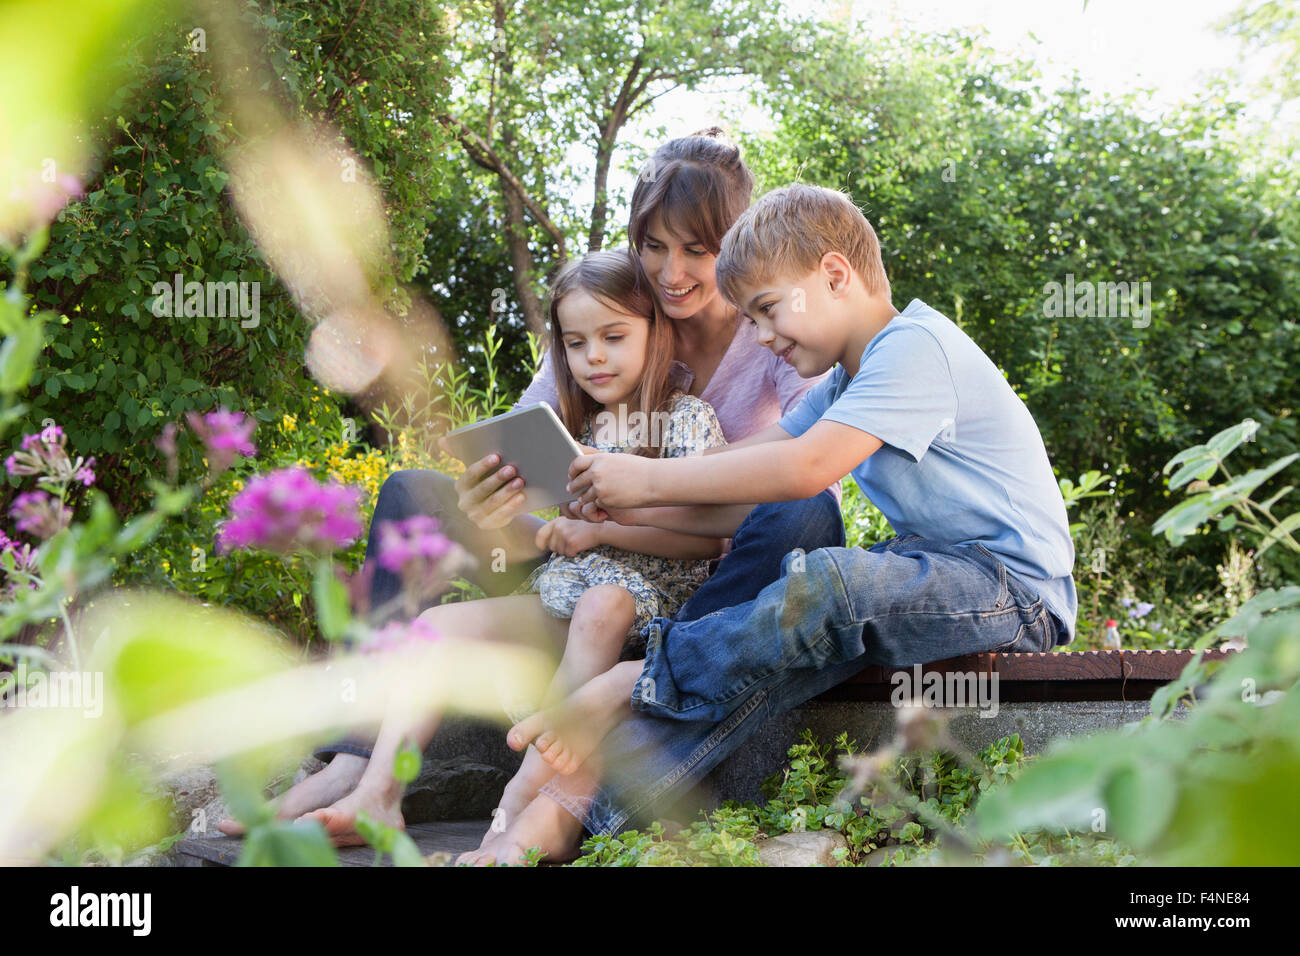 Mother, son and daughter with digital tablet in garden - Stock Image